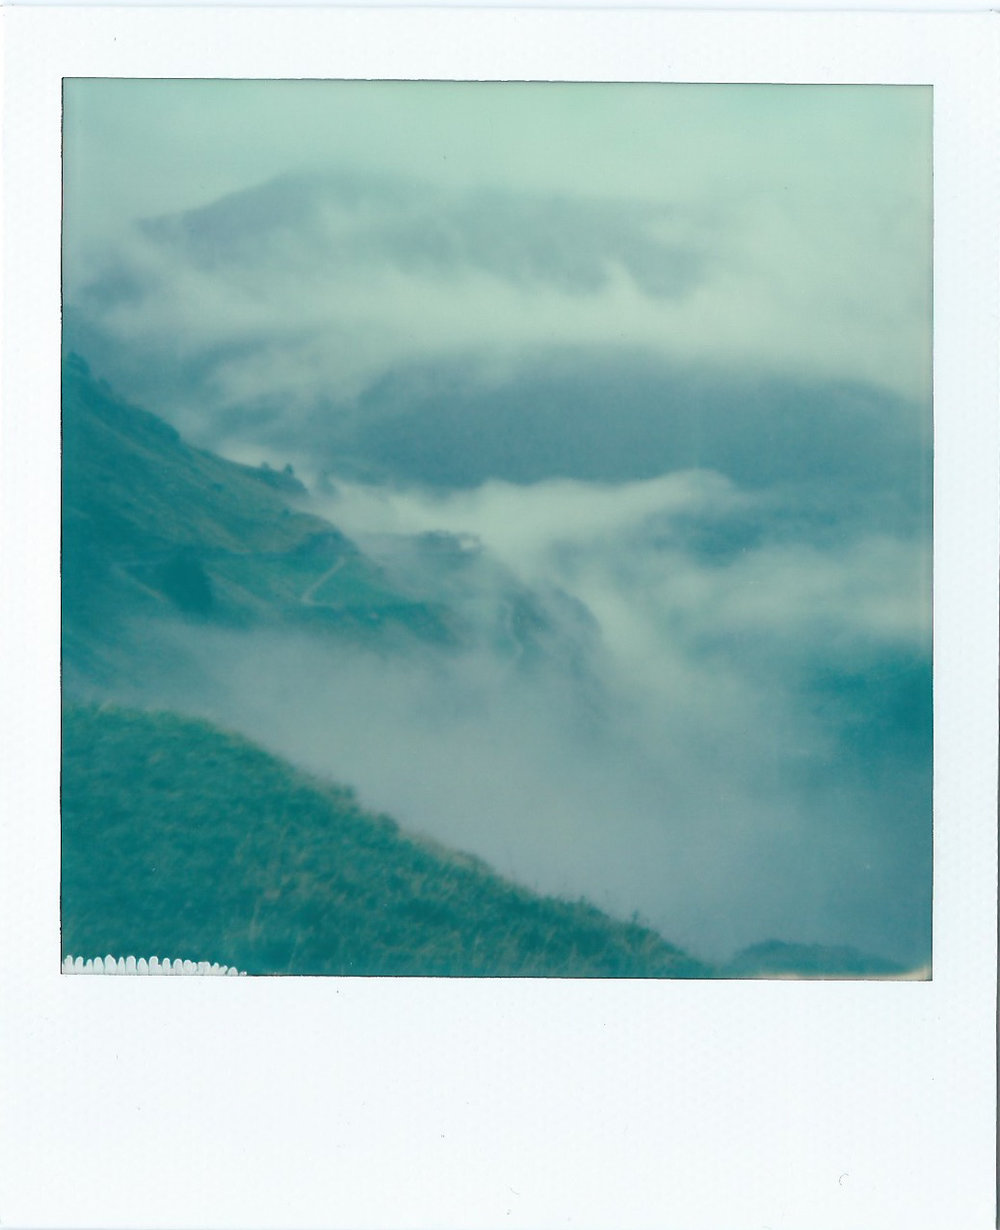 Fog | I-1 | Impossible Color 3.0 | Ainu Lindale